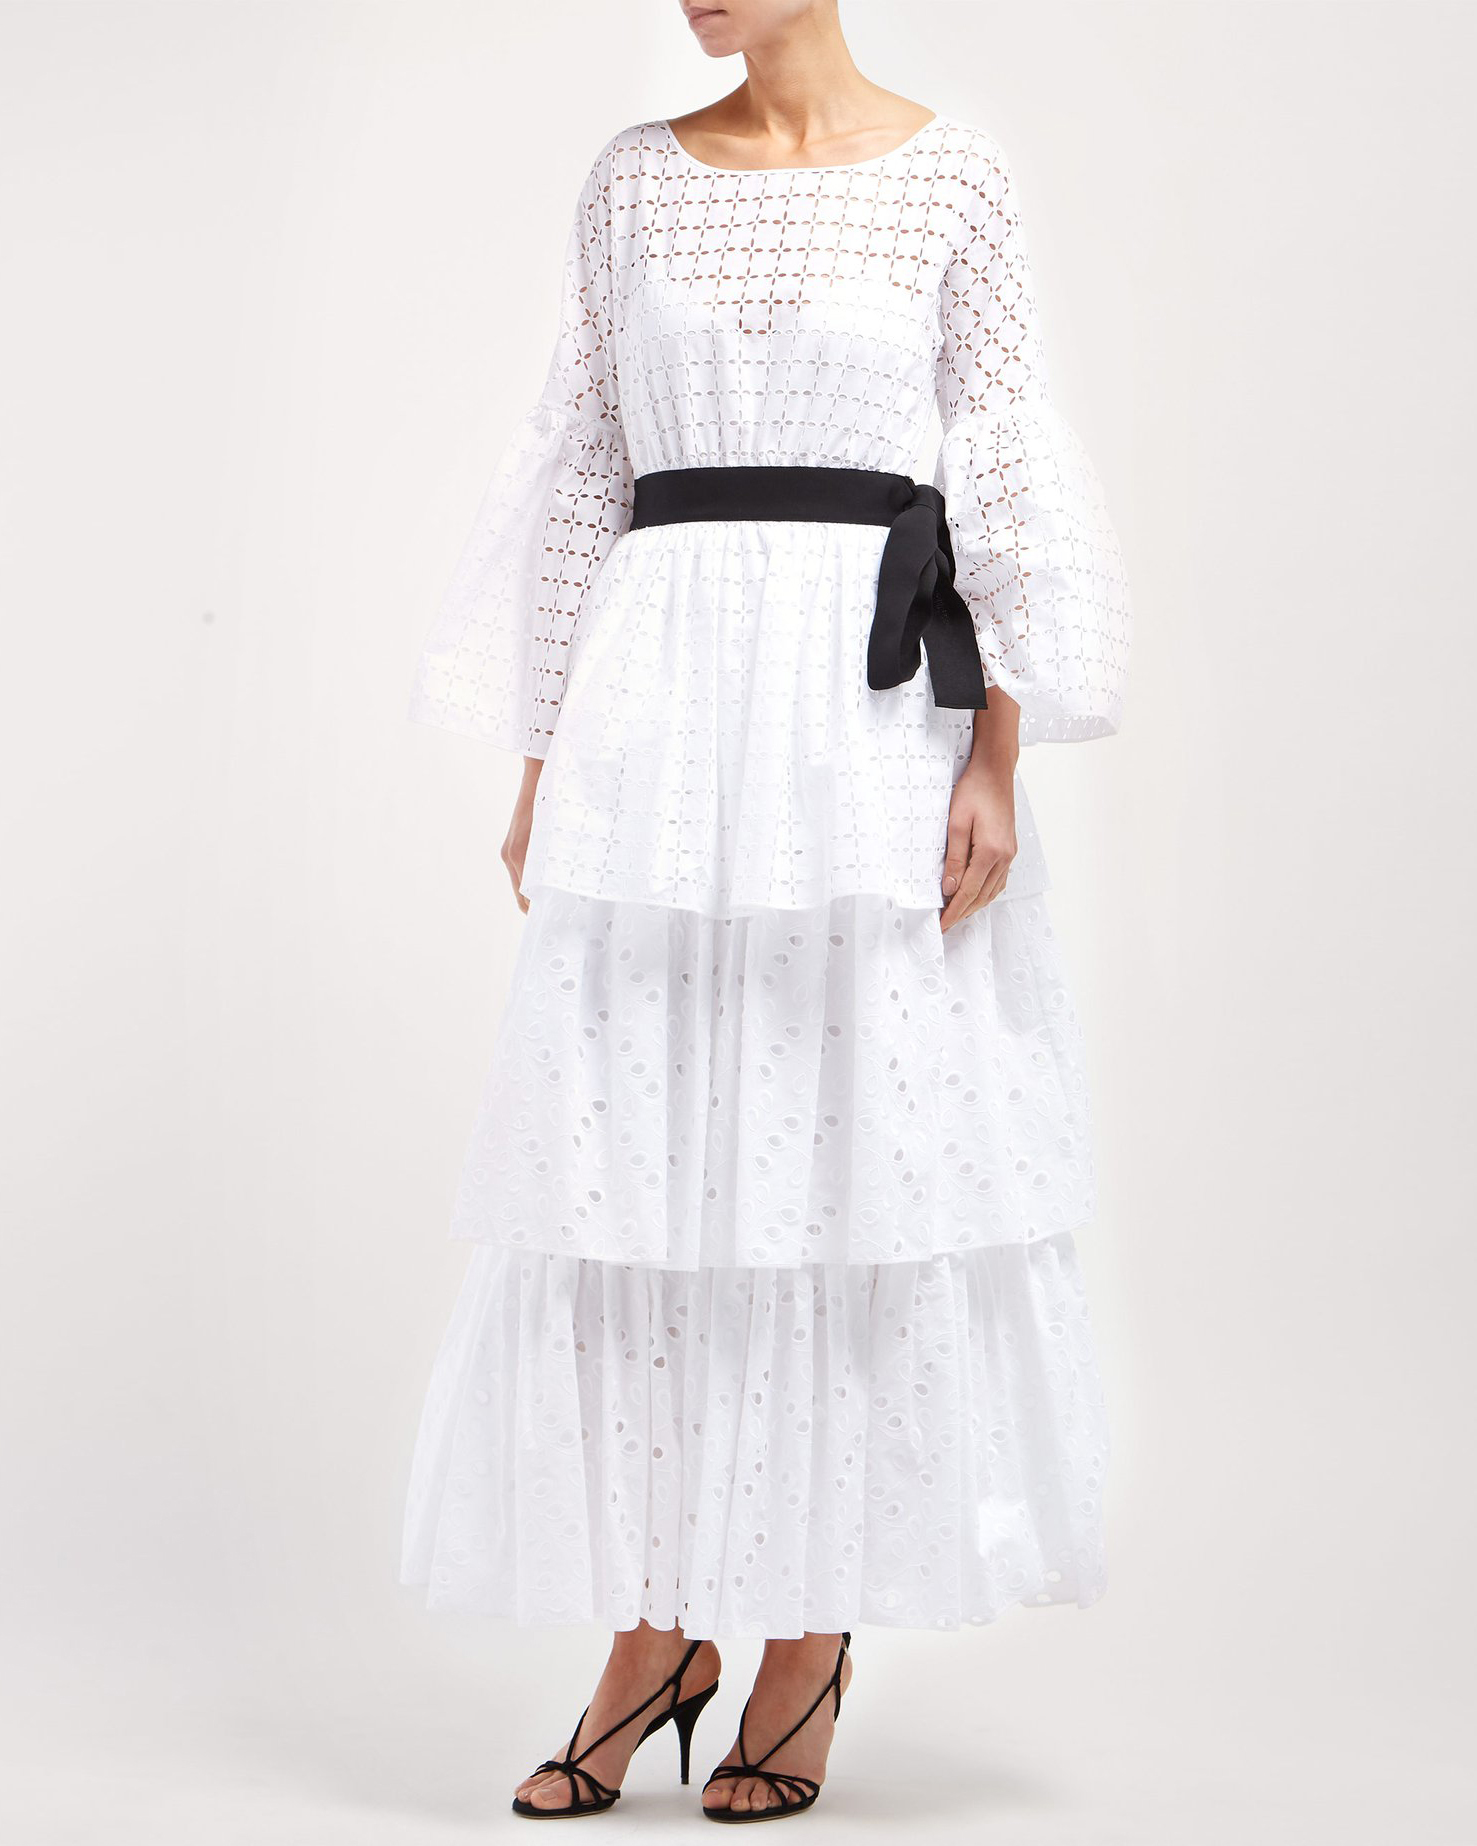 white Tiered Cotton Dress with black belted waaist